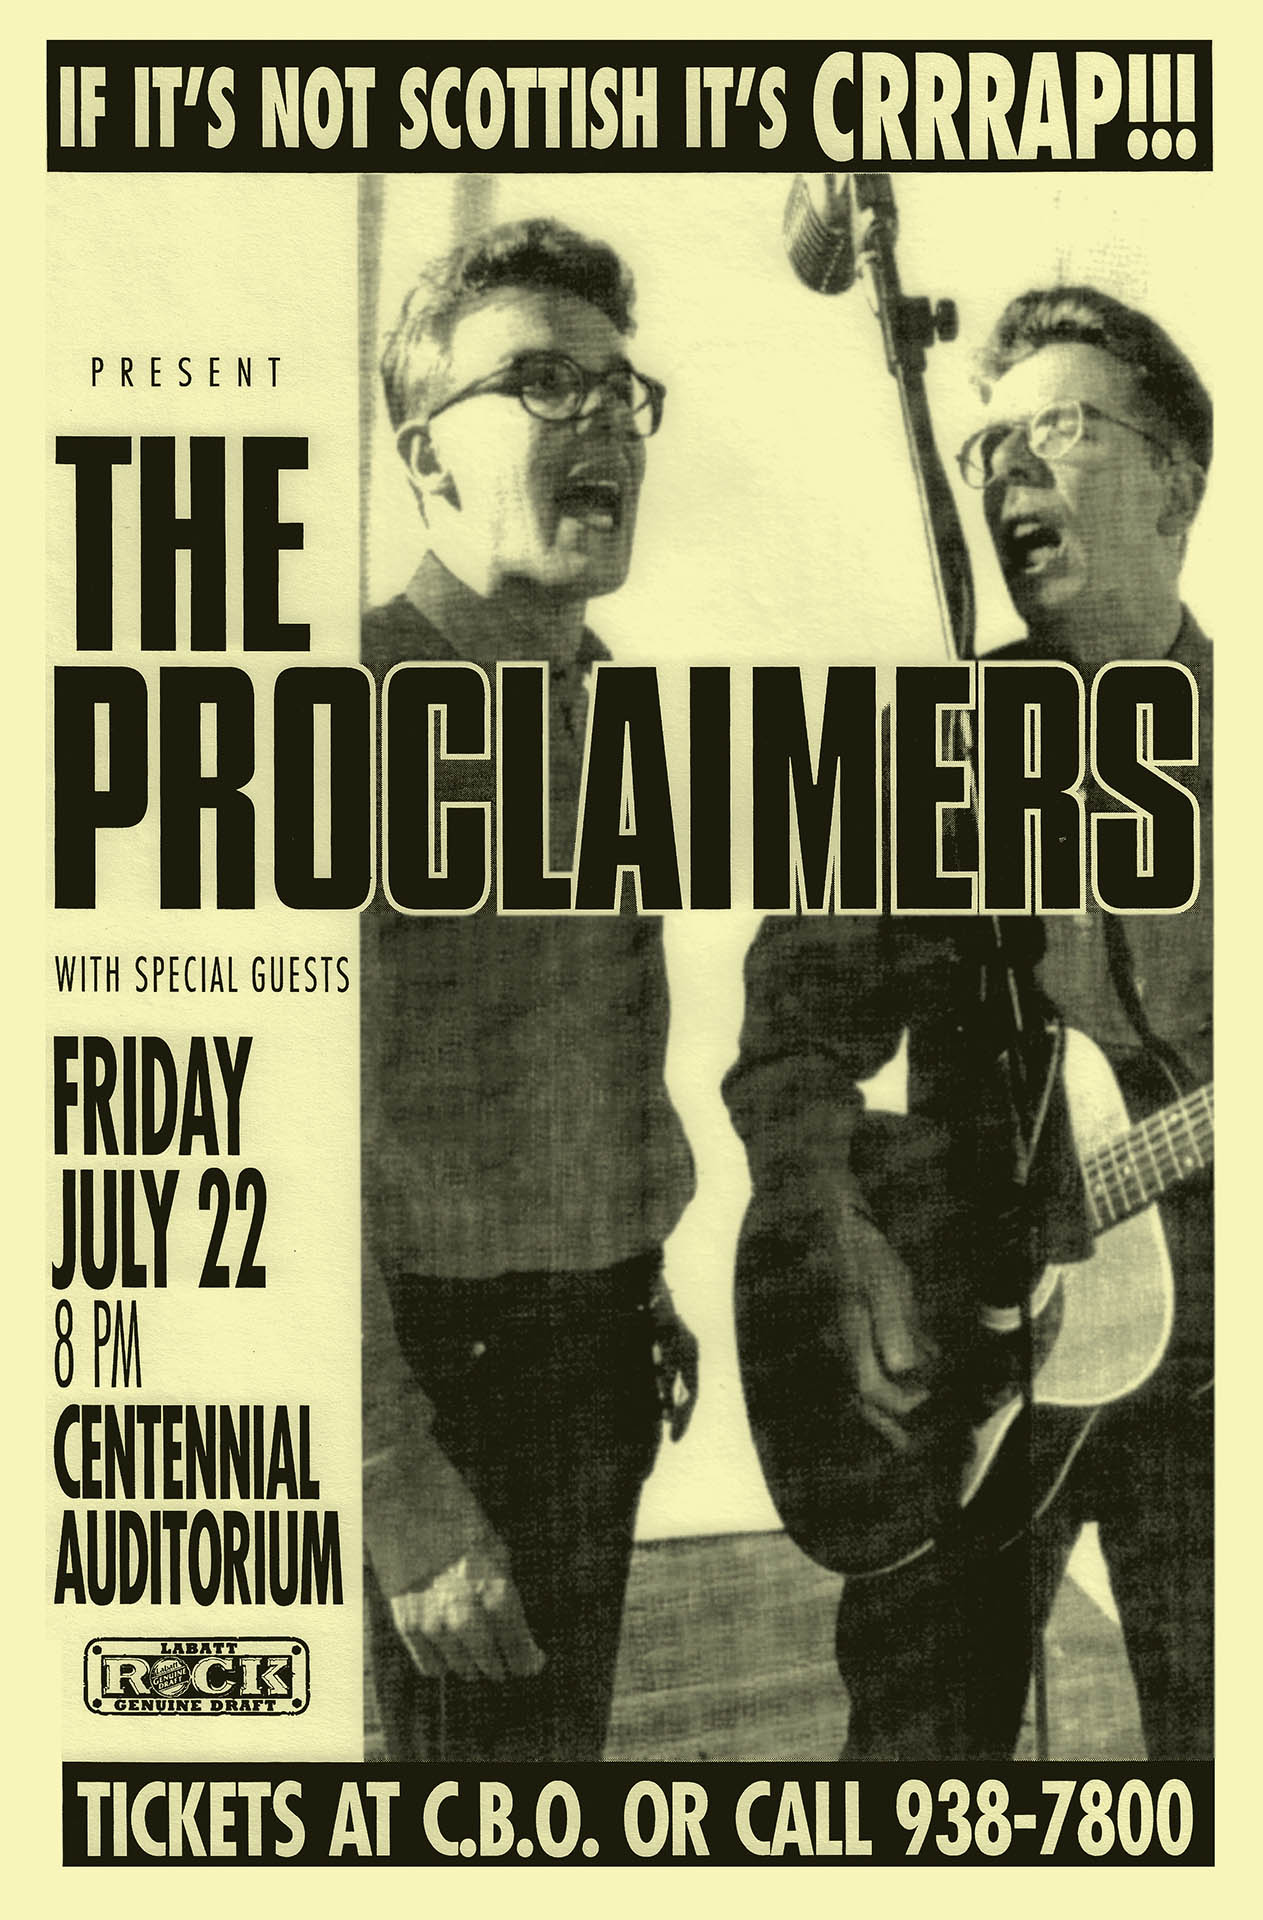 The Proclaimers - 1994